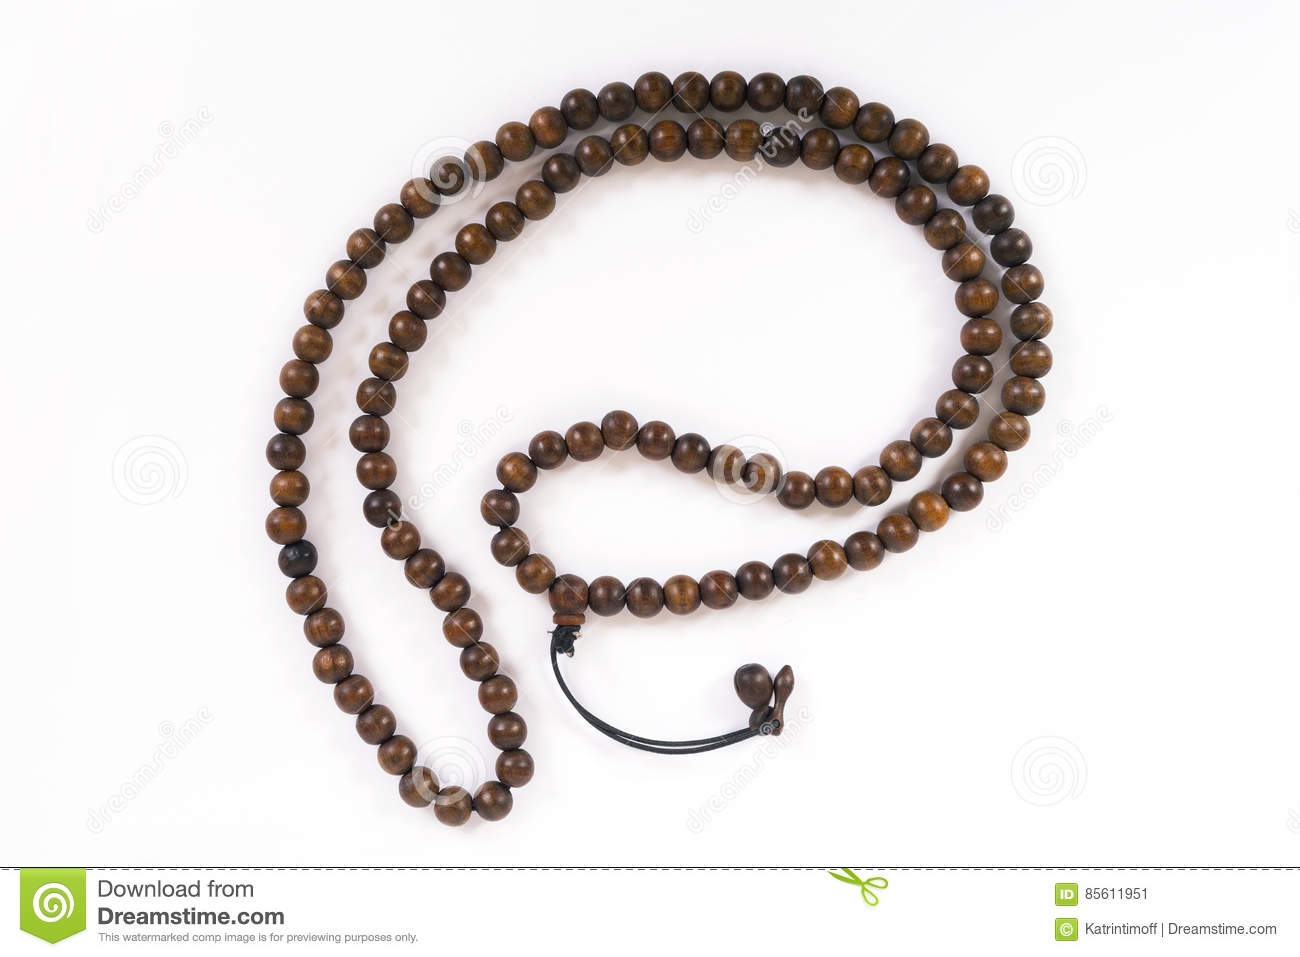 Wooden beads stock image  Image of culture, symbolic - 85611951